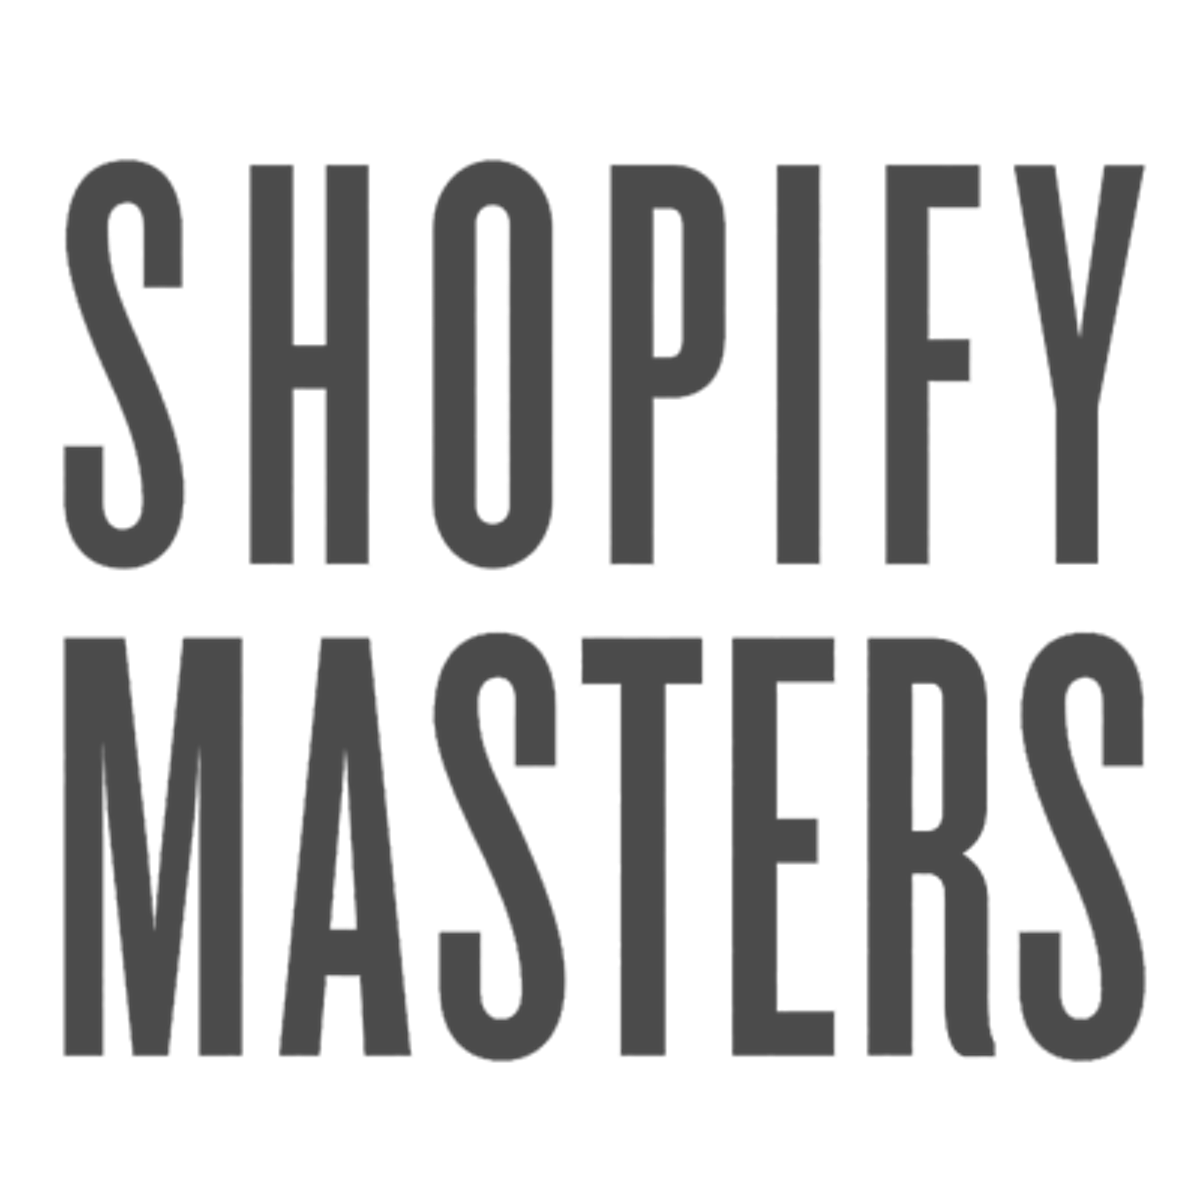 Shopify Campus Protein